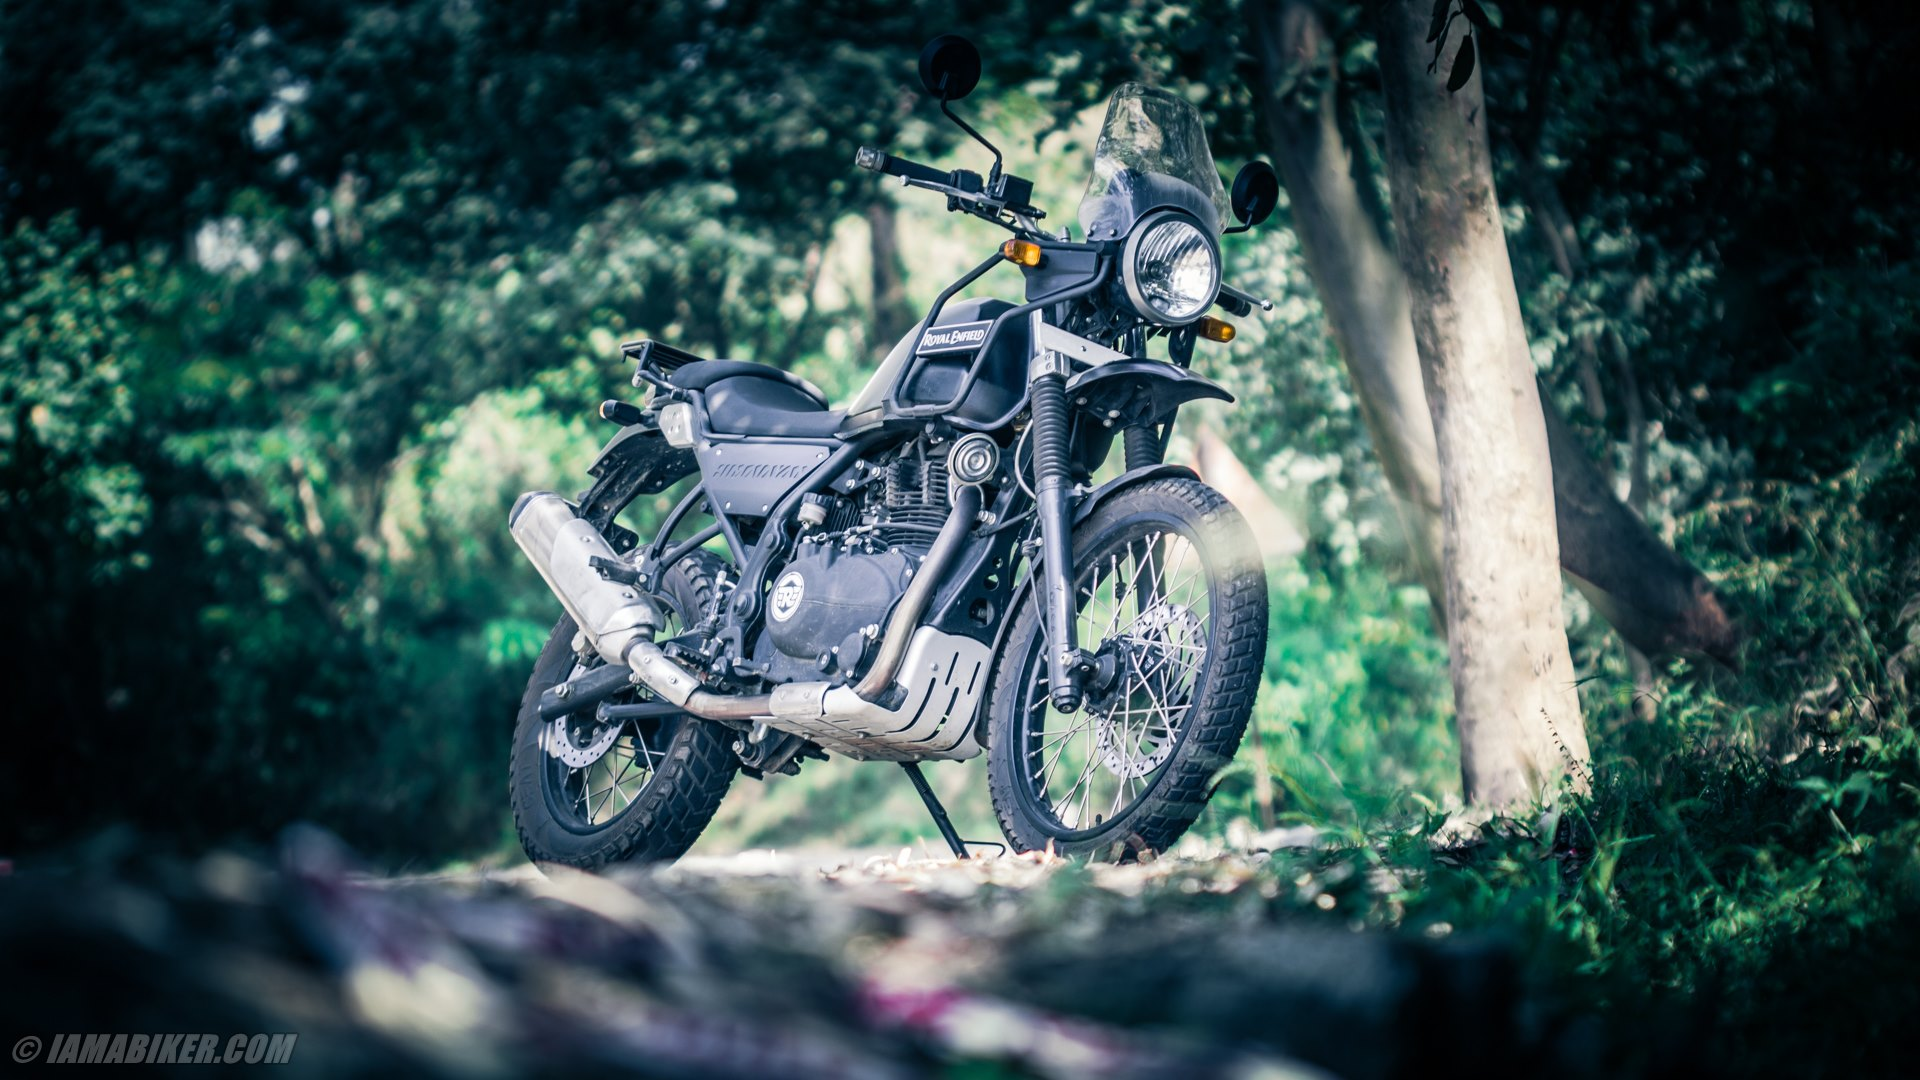 royal enfield himalayan hd wallpapers | iamabiker